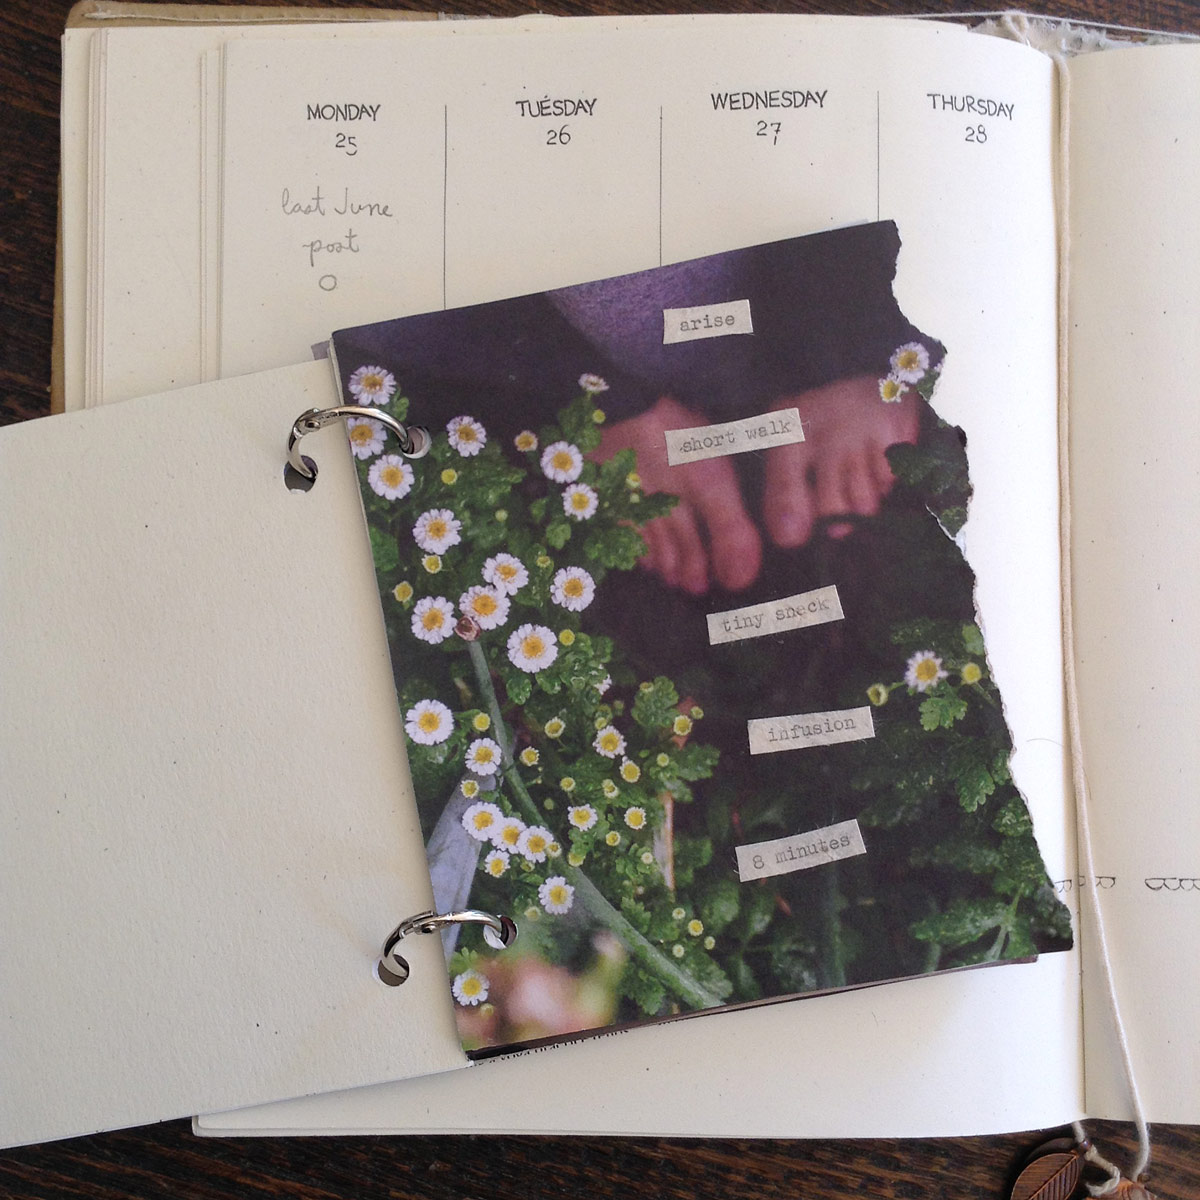 The Book of Hours...pebbles to place and follow through your day. A homemade, papery system by Lesley Austin of Small Meadow-Wild Simplicity.